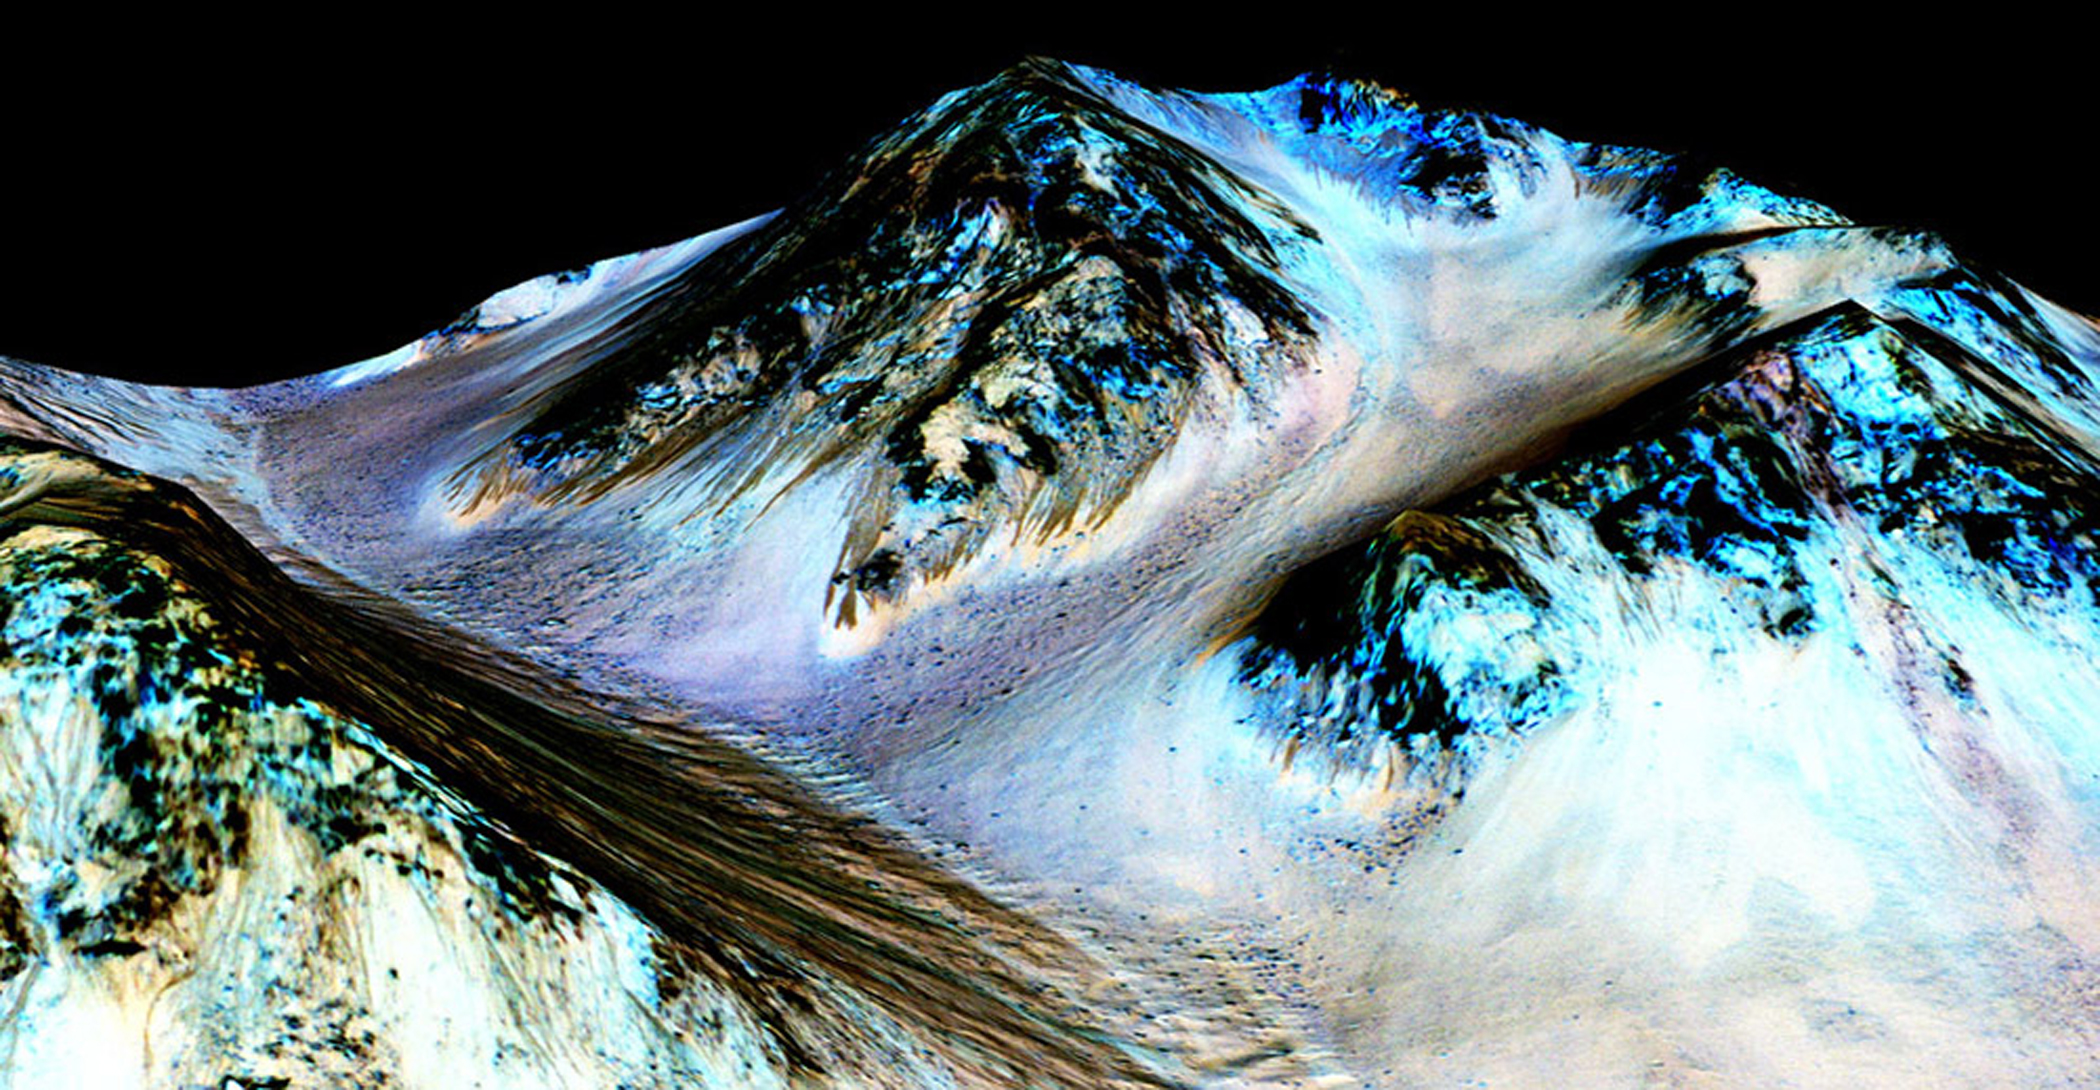 A 3-D computer model (a digital terrain map) of Hale Crater on Mars based on stereo information from two HiRISE observations showing dark, narrow streaks on the Martian slopes that are inferred to be formed by seasonal flow of water on contemporary Mars was released on Sept. 28, 2015.